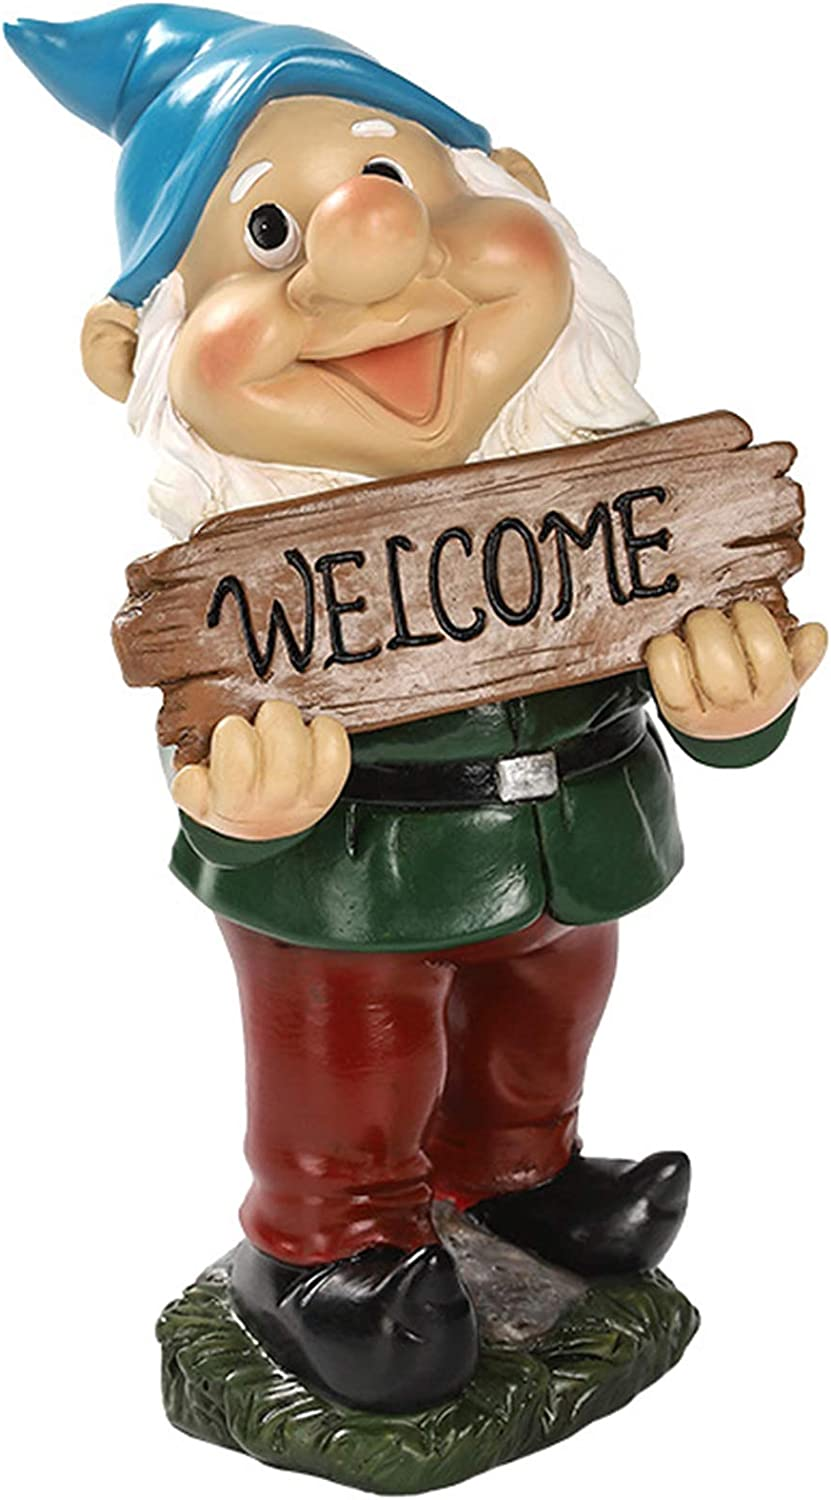 Idle Hippo Welcome Garden Gnome Statue Funny Outdoor Gnome Decorations Garden Figurines for Lawn Patio Yard Decor